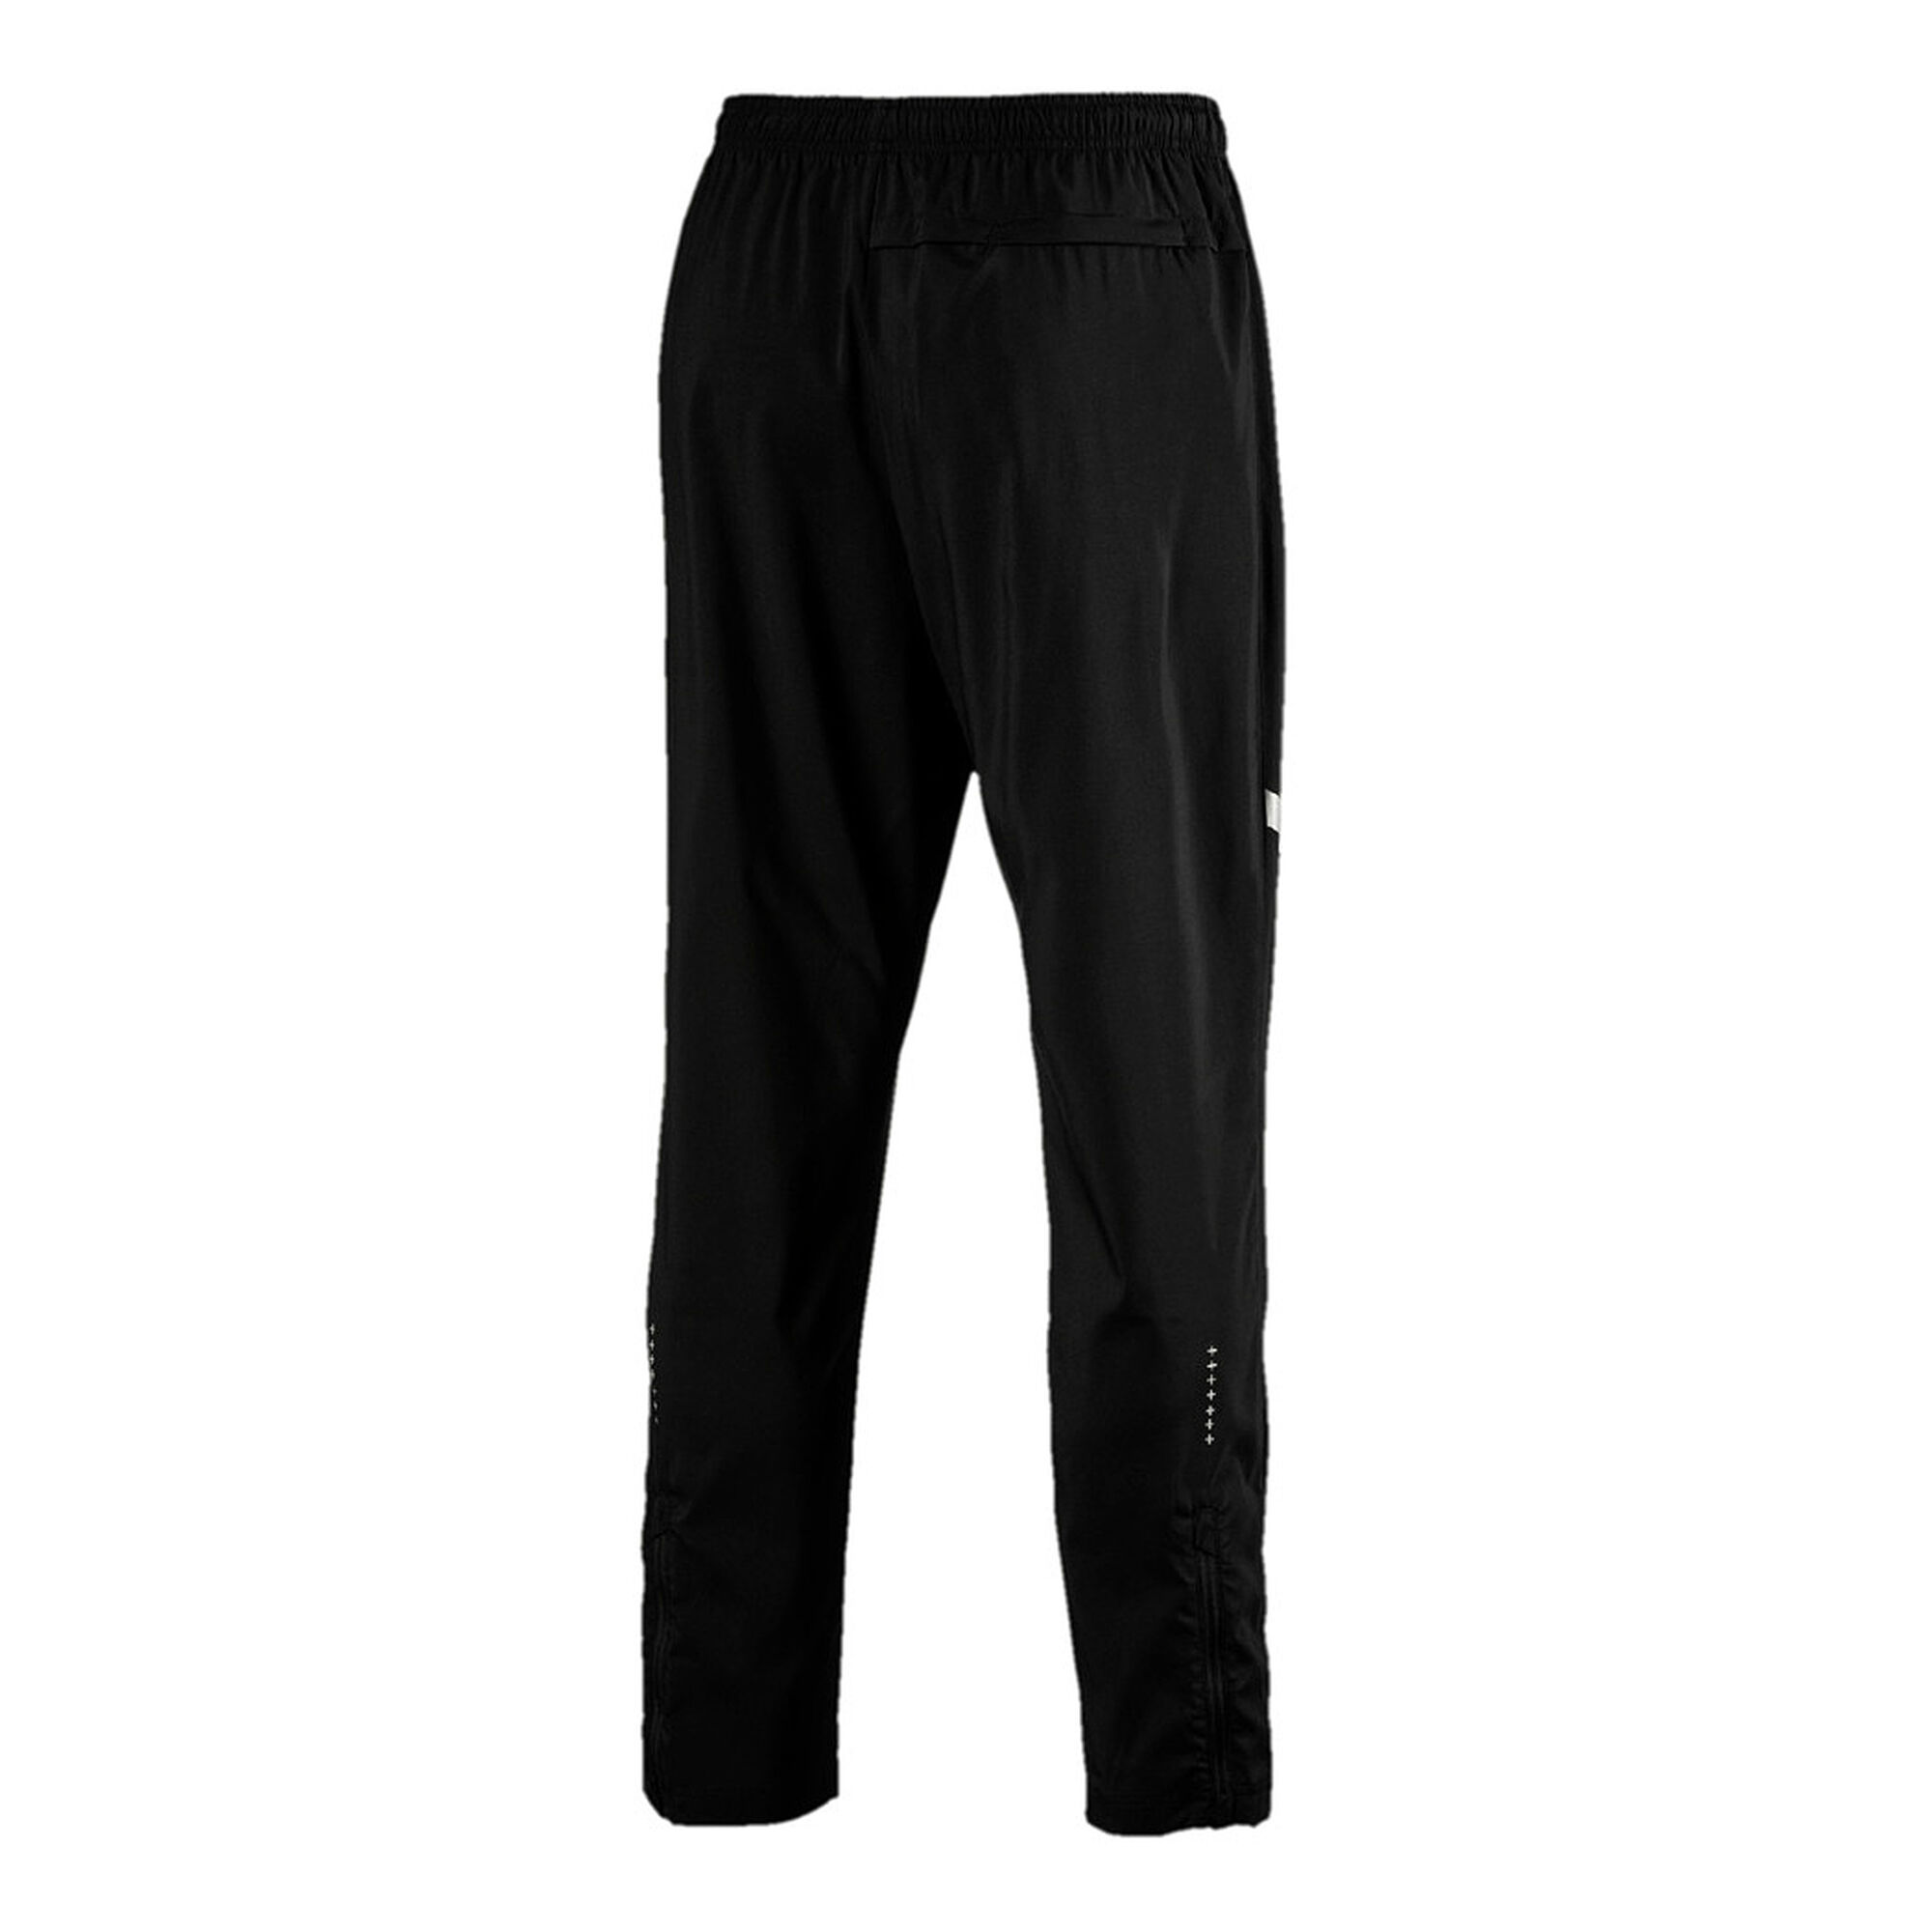 45be47d03e76 buy Puma Run Woven Training Pants Men - Black